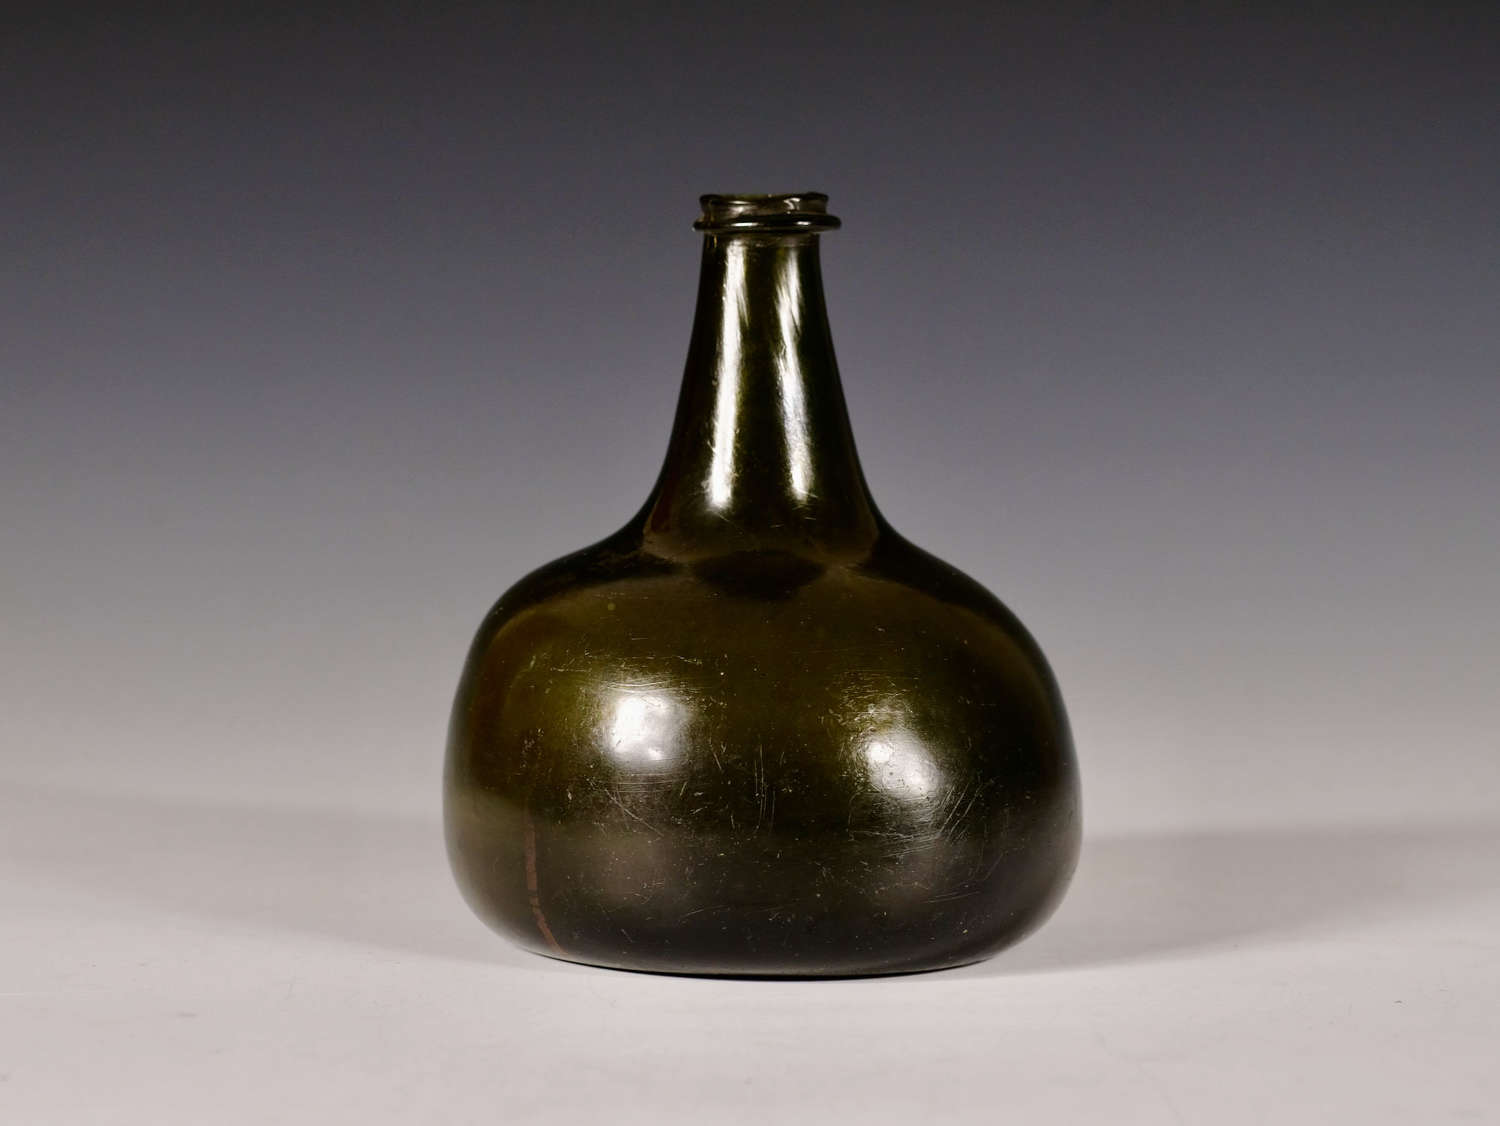 Early 18th century onion wine bottle